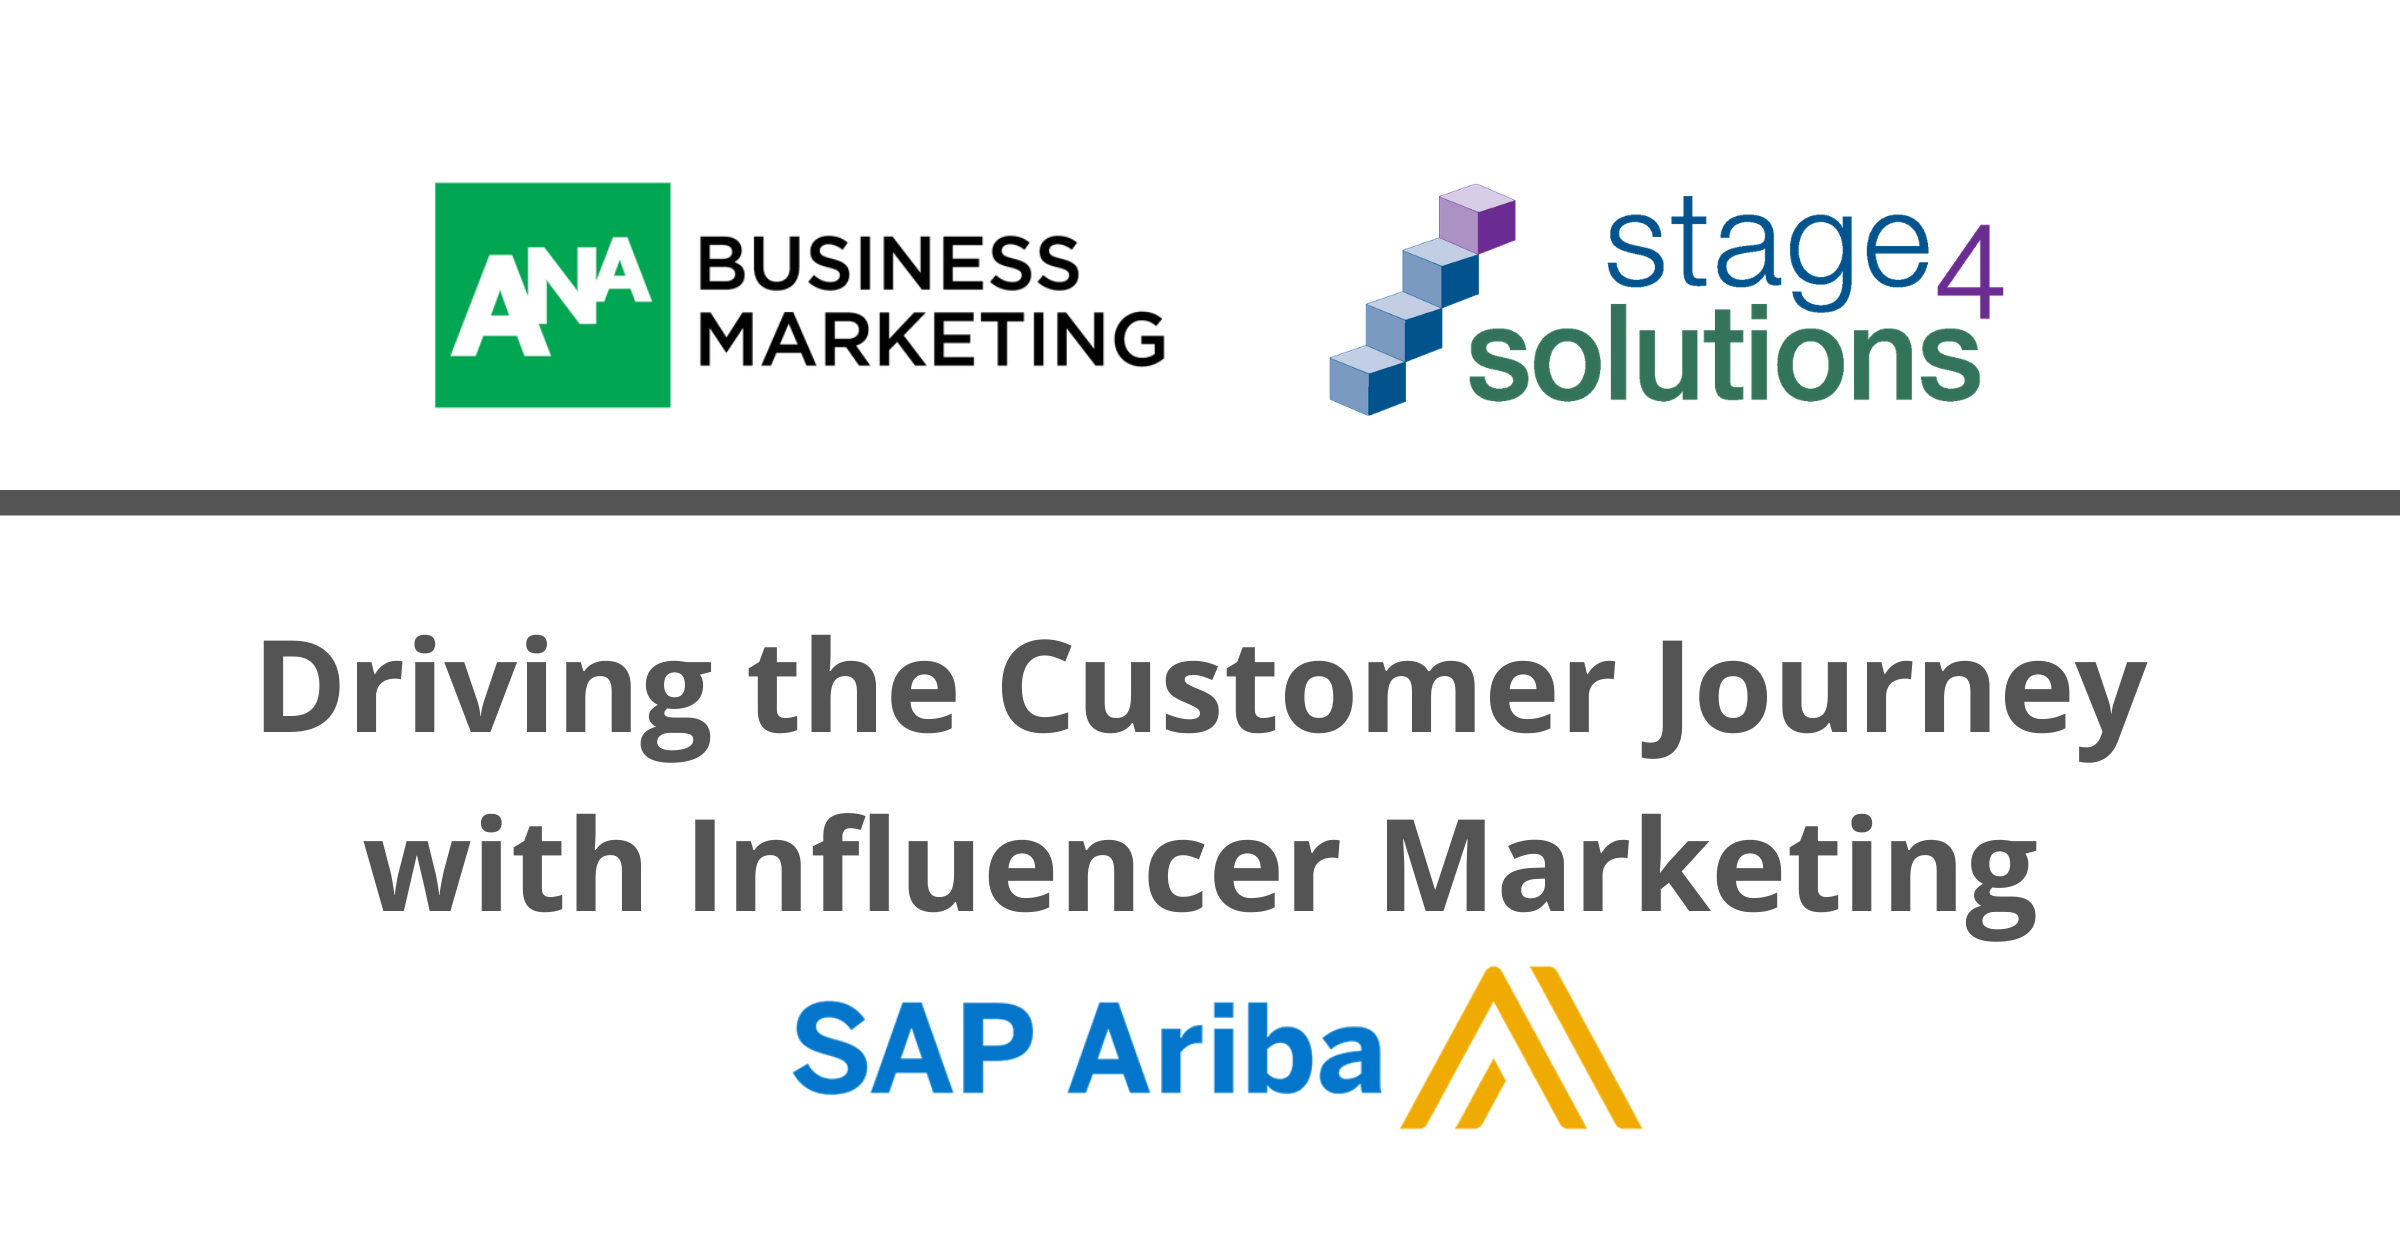 Driving the Customer Journey with Influencer Marketing